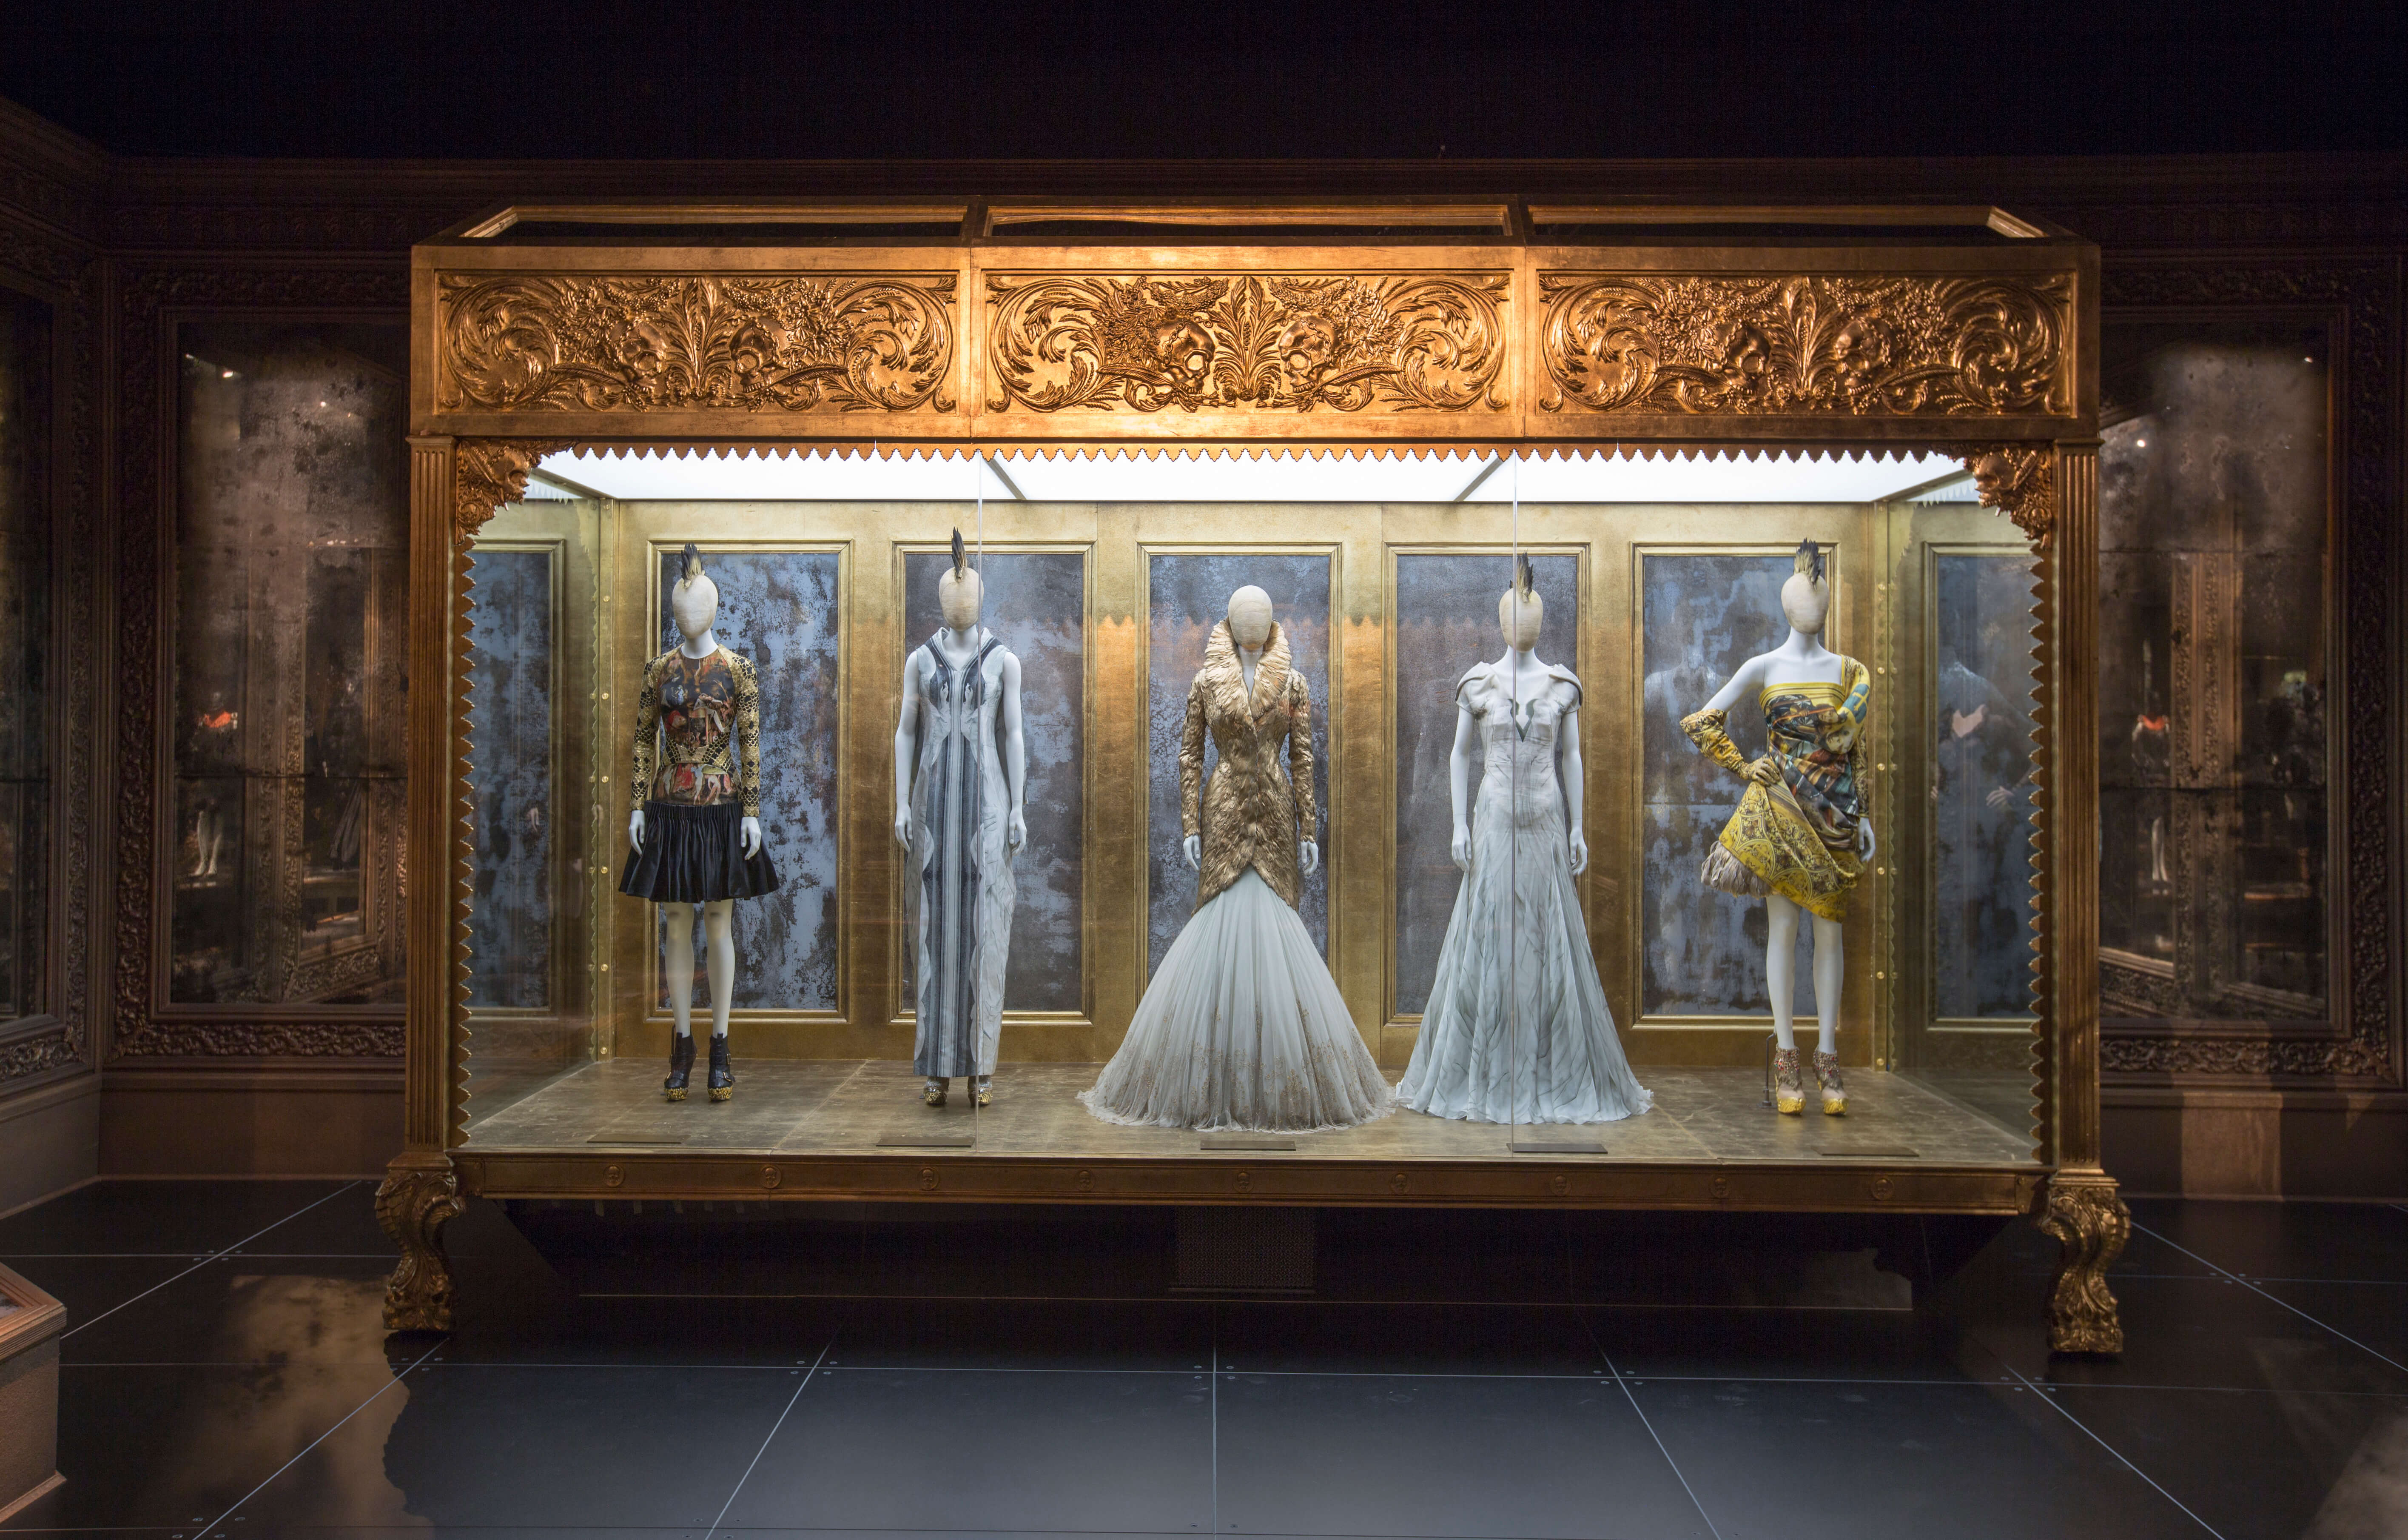 3._Installation_view_of_Romantic_Gothic_gallery_Alexander_McQueen_Savage_Beauty_at_the_VA_c_Victoria_and_Albert_Museum_London